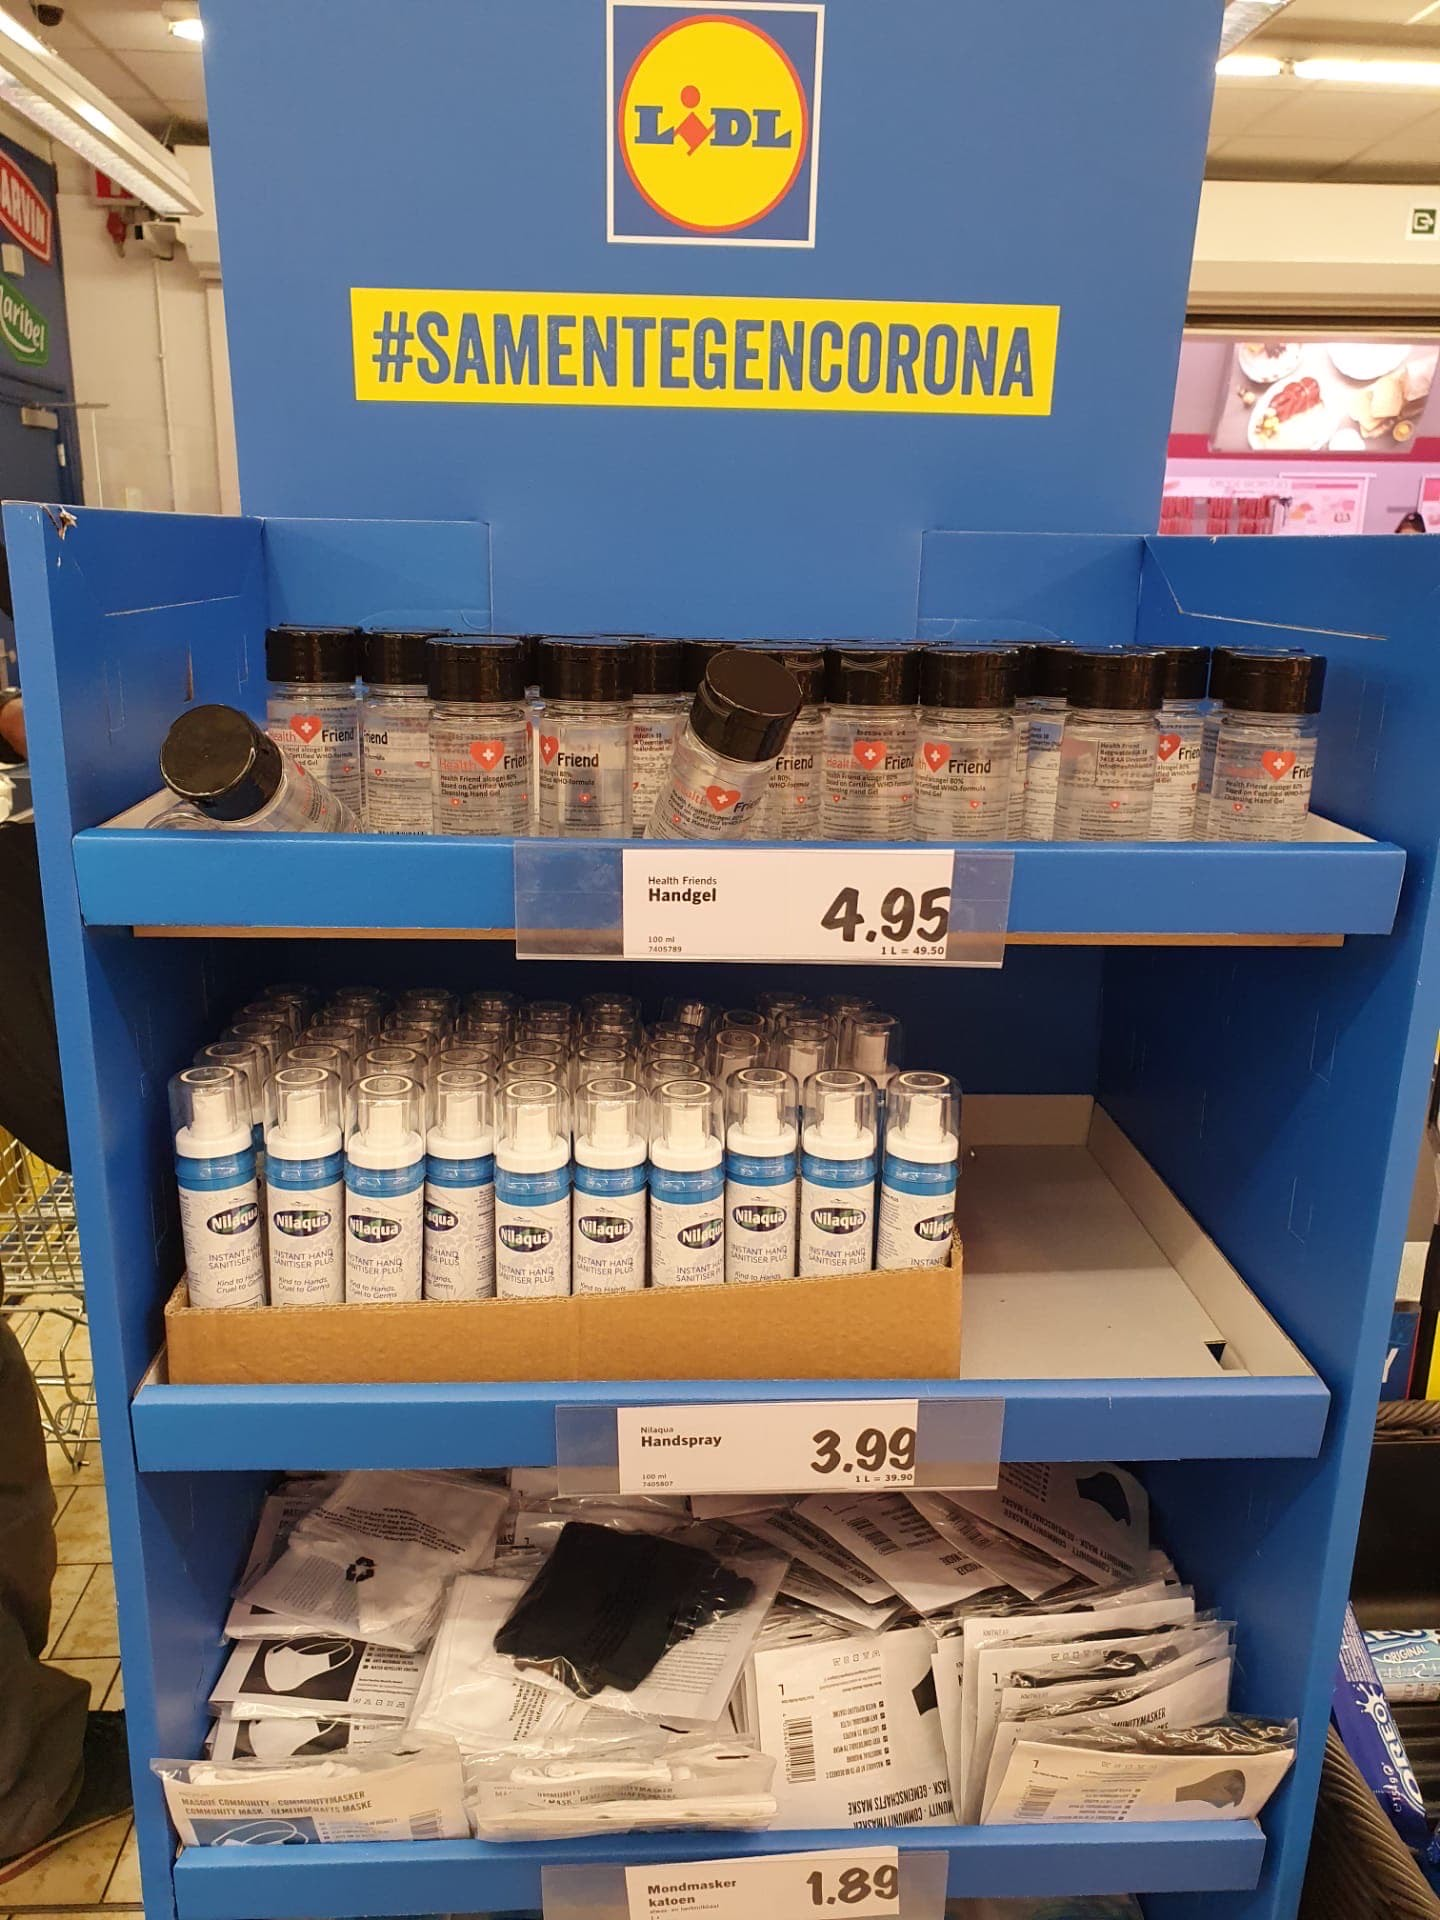 Alcohol-Free hand sanitiser limited edition in Lidl Belgium